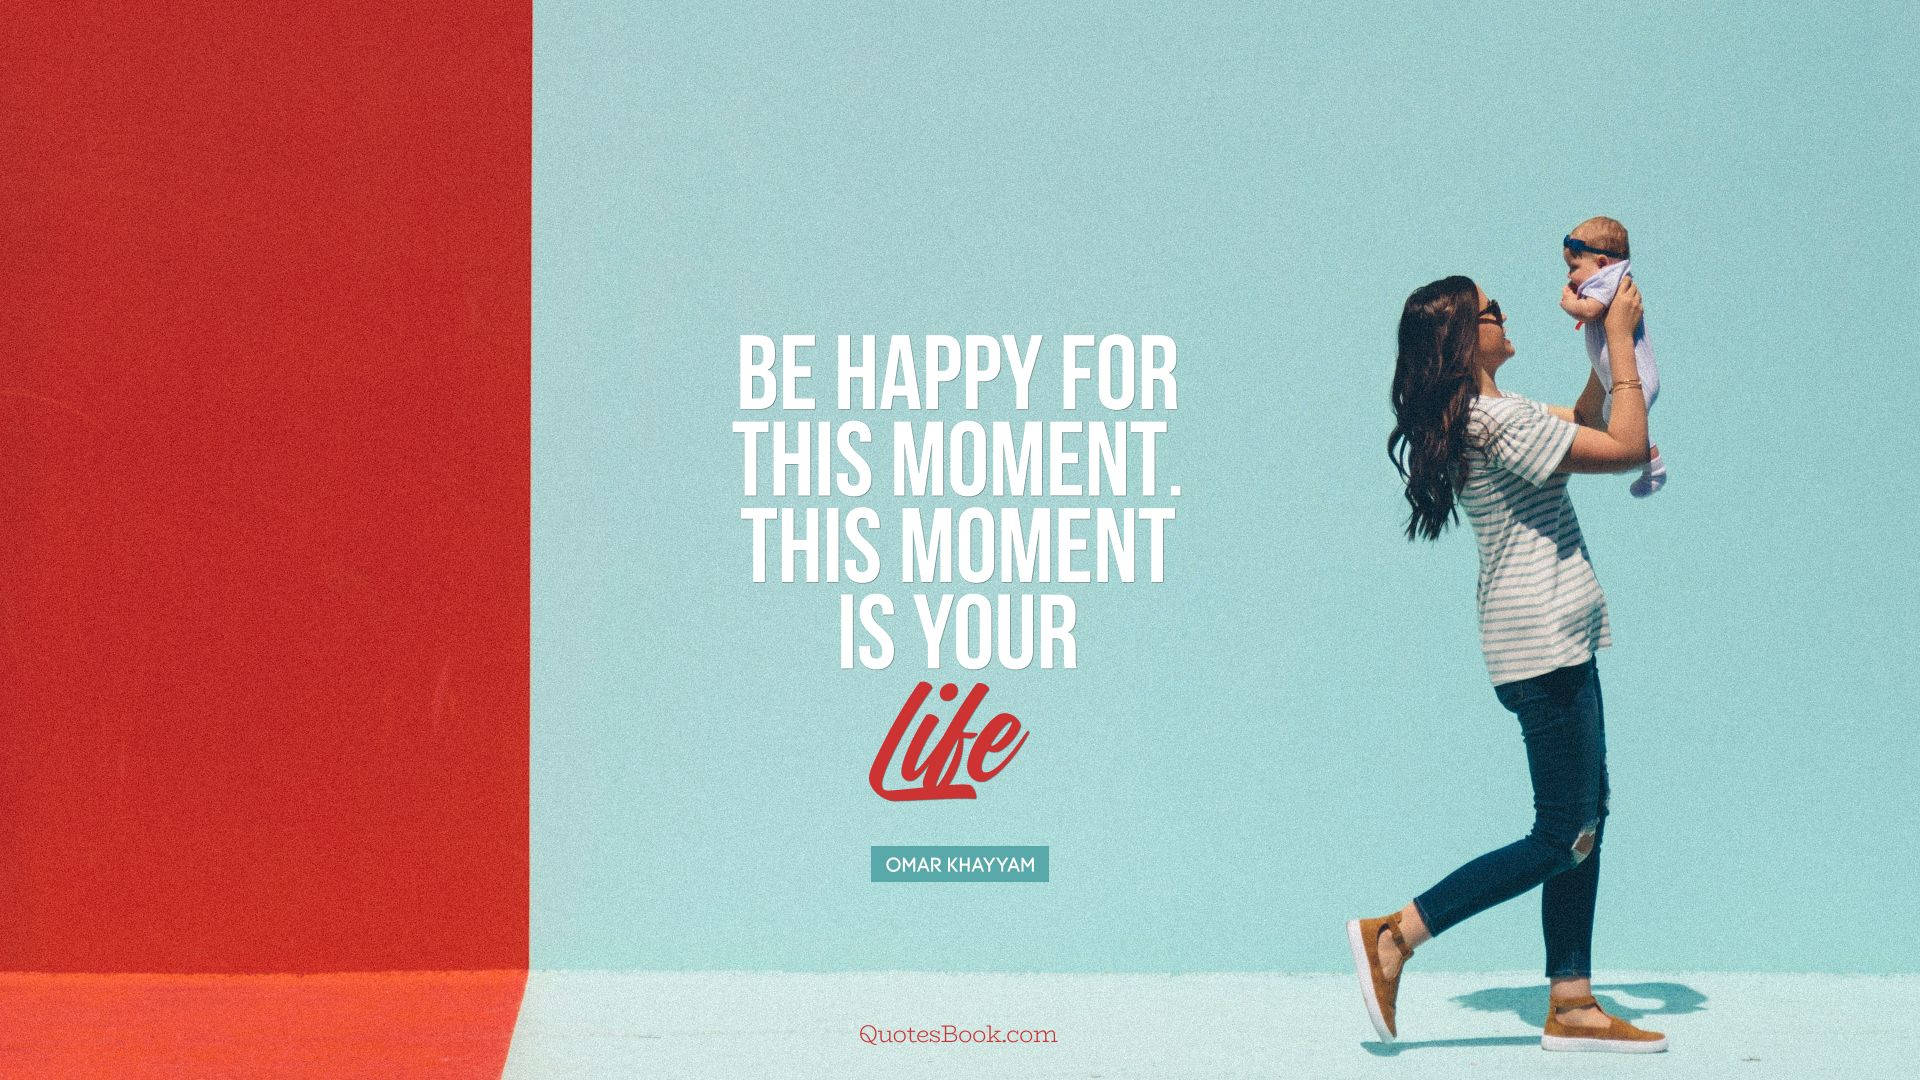 Be happy for this moment. This moment is your life. - Quote by Omar Khayyam